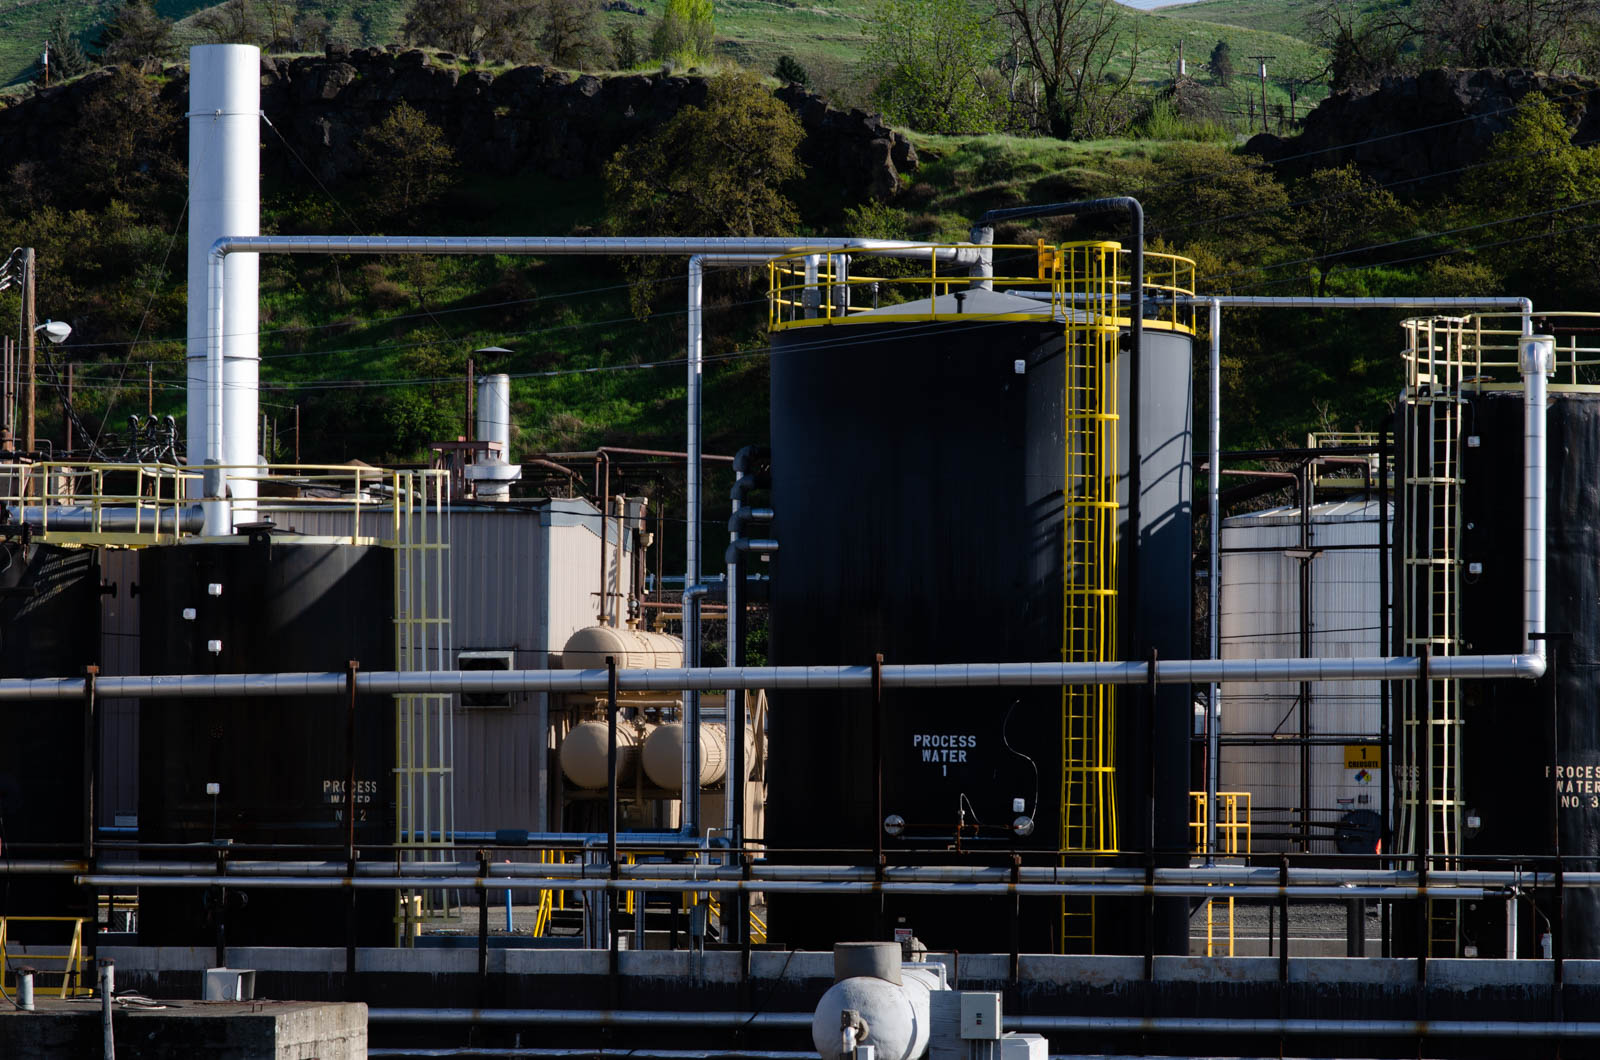 Process water and creosote tanks at AmeriTies West in The Dalles, Ore.